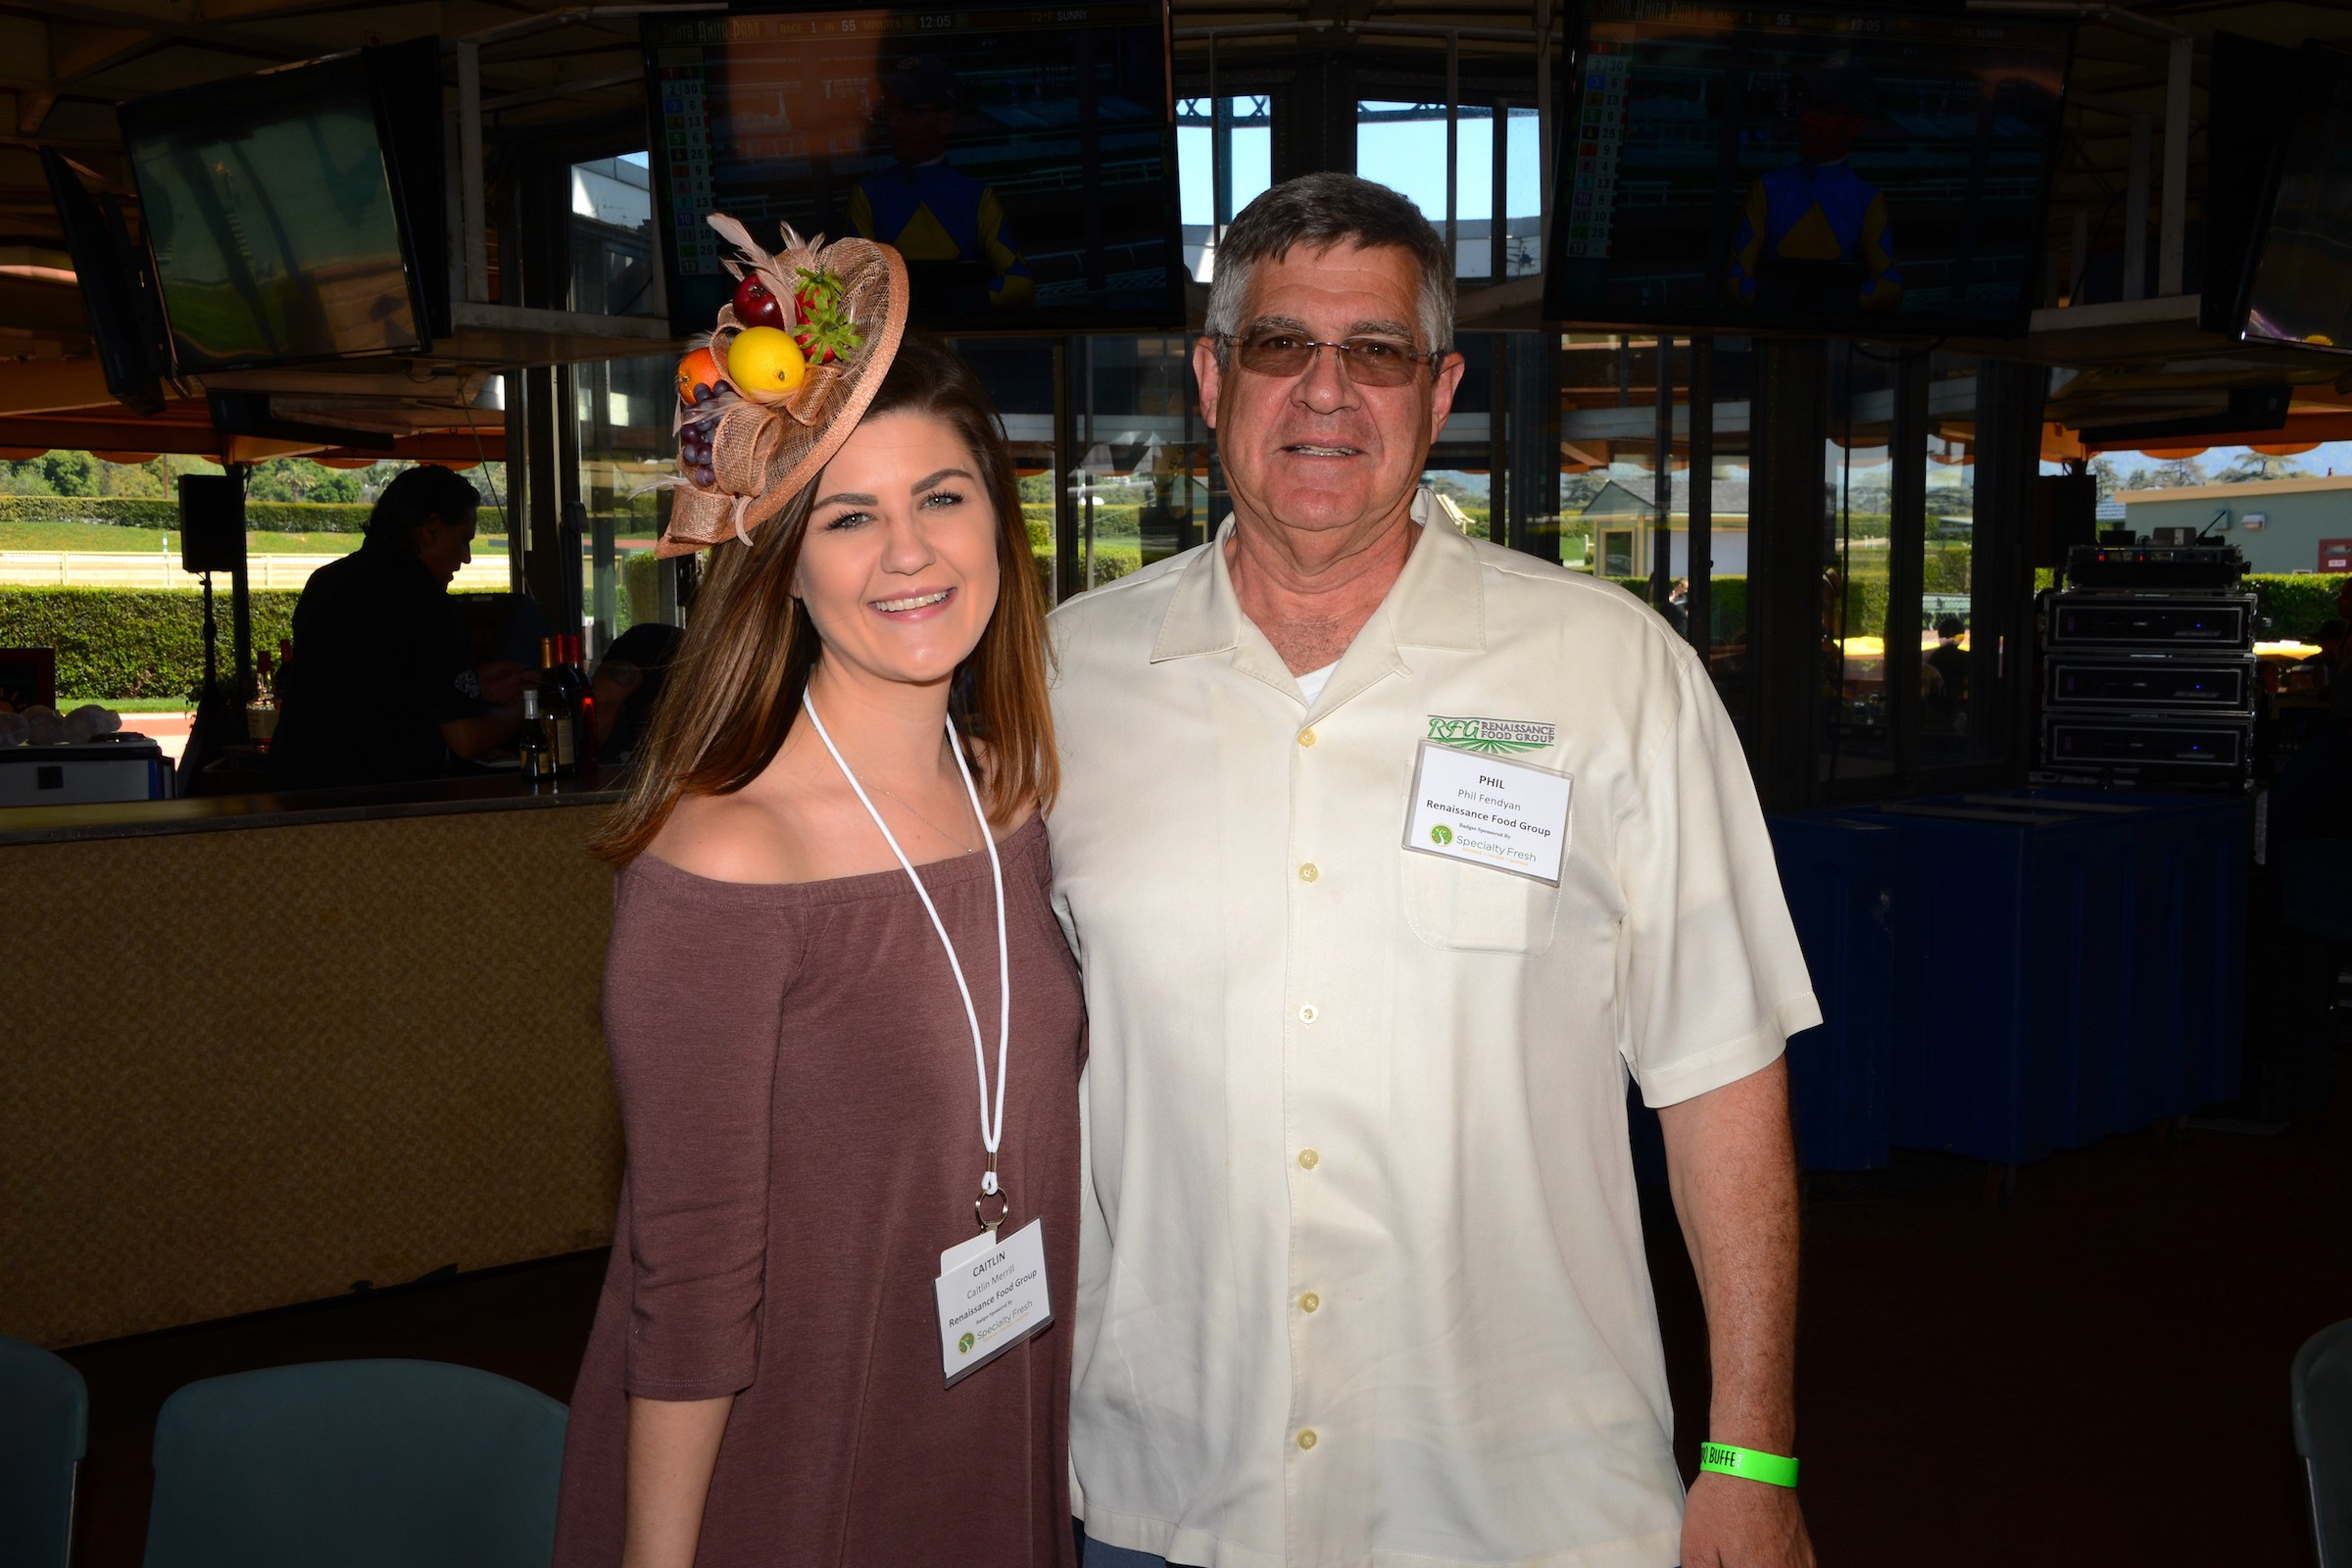 Caitlin Merrill and Phil Fendyan from Renaissance Food Group